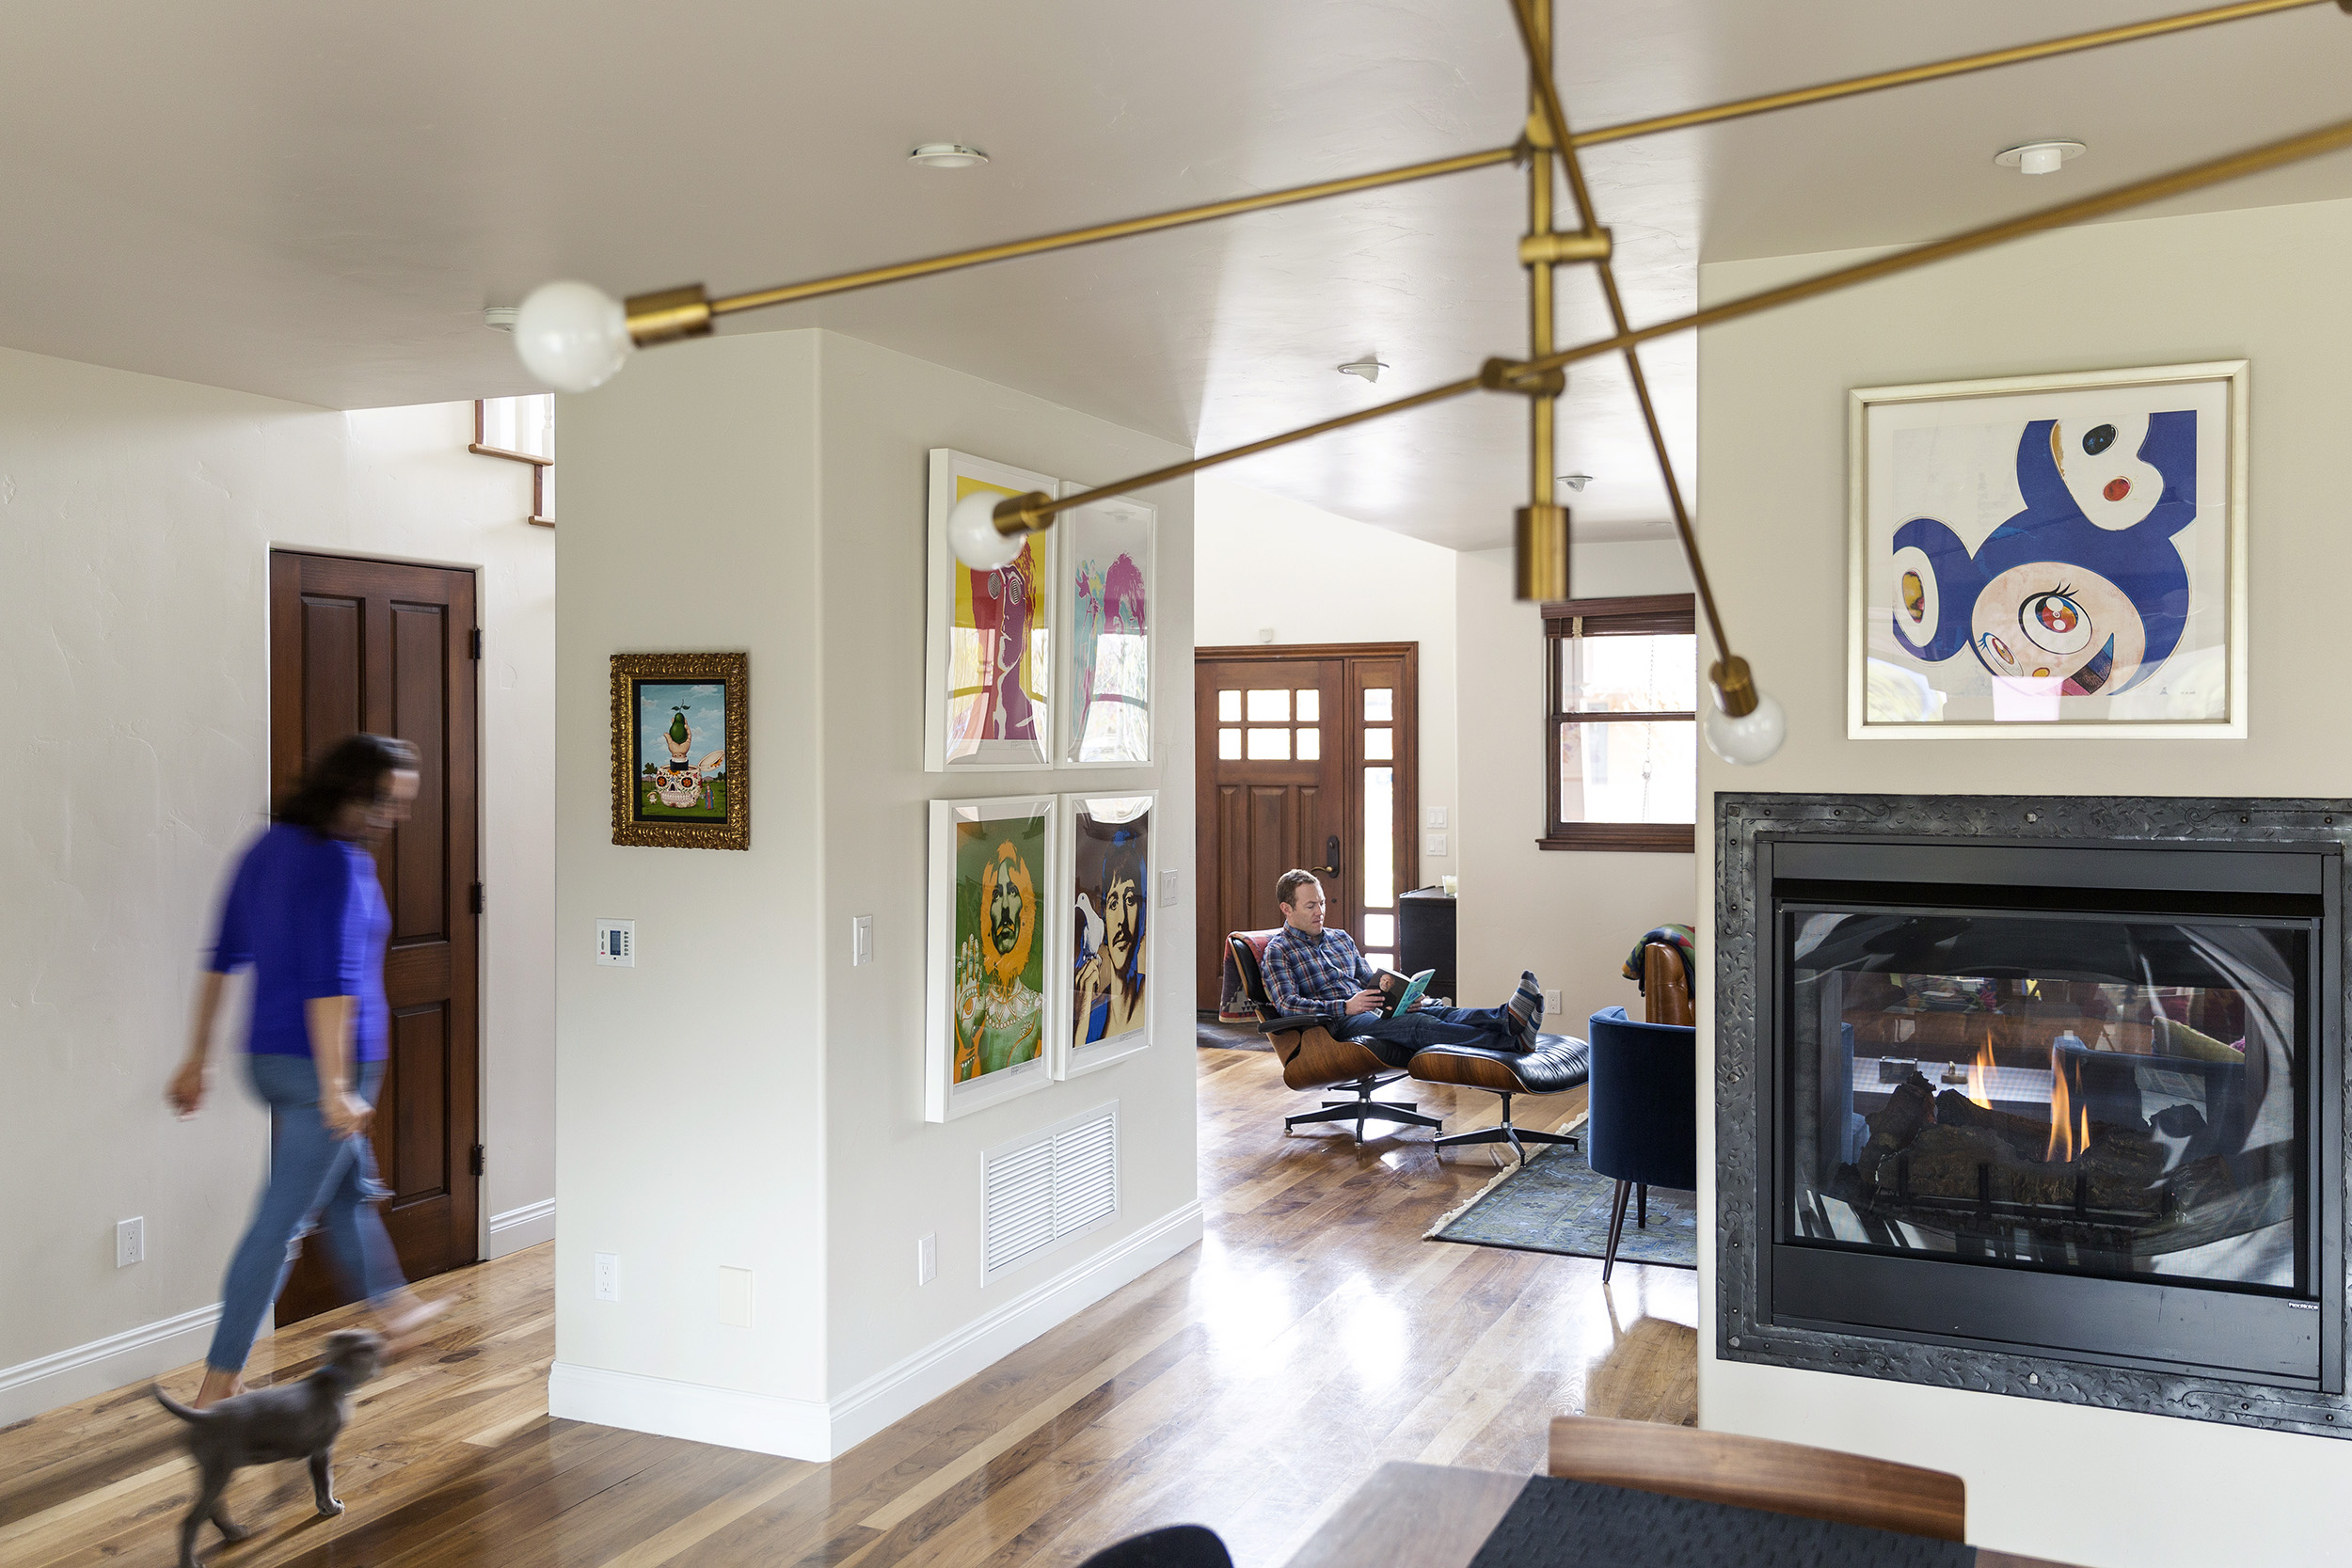 The Seymour Family enjoys their home in Basalt, Colo., in April 2018, just outside of Aspen. The Seymours moved to Basalt from Los Angeles in late 2016 for a change of pace, and because their careers allow them to work from anywhere. Joshua Seymour is a physician, and his wife, Marci is a CPA. They love to spend time in their backyard and at a nearby park with their two kids Stella, 4, Cassius, 2, and their new silver lab puppy, Ruby. CREDIT: Rebecca Stumpf for The Wall Street JournalVAYCAY-Seymour